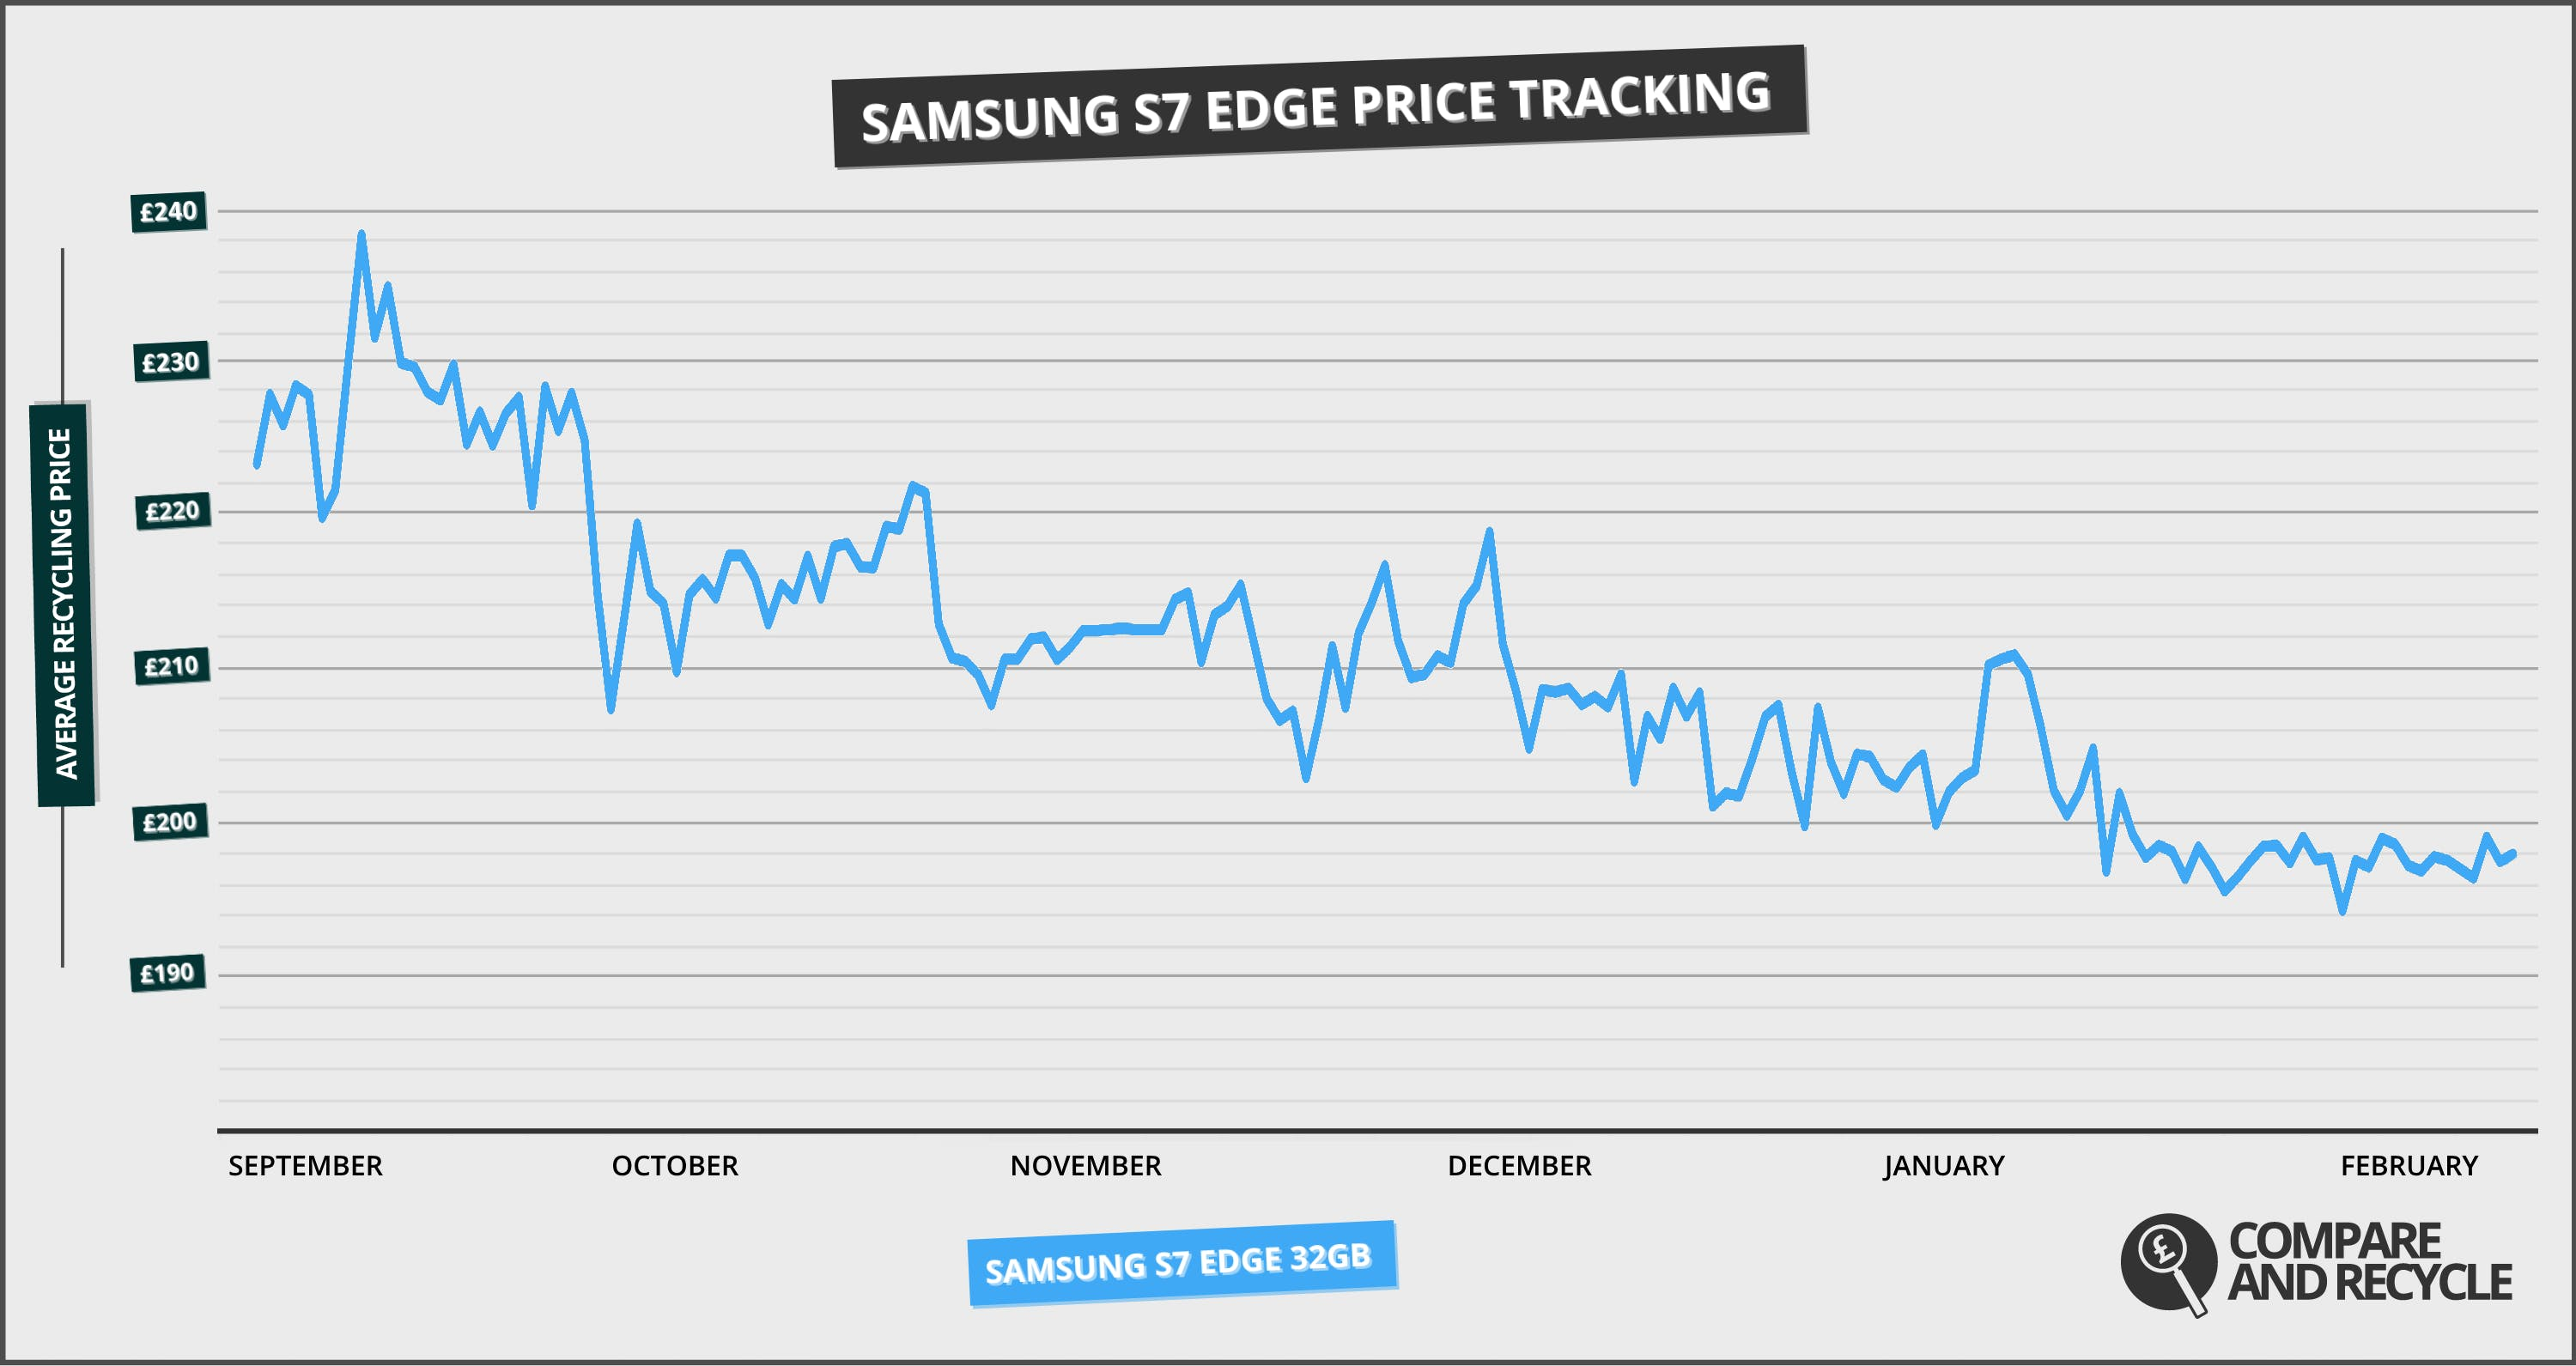 SAMSUNG-S7-EDGE-pricetracking